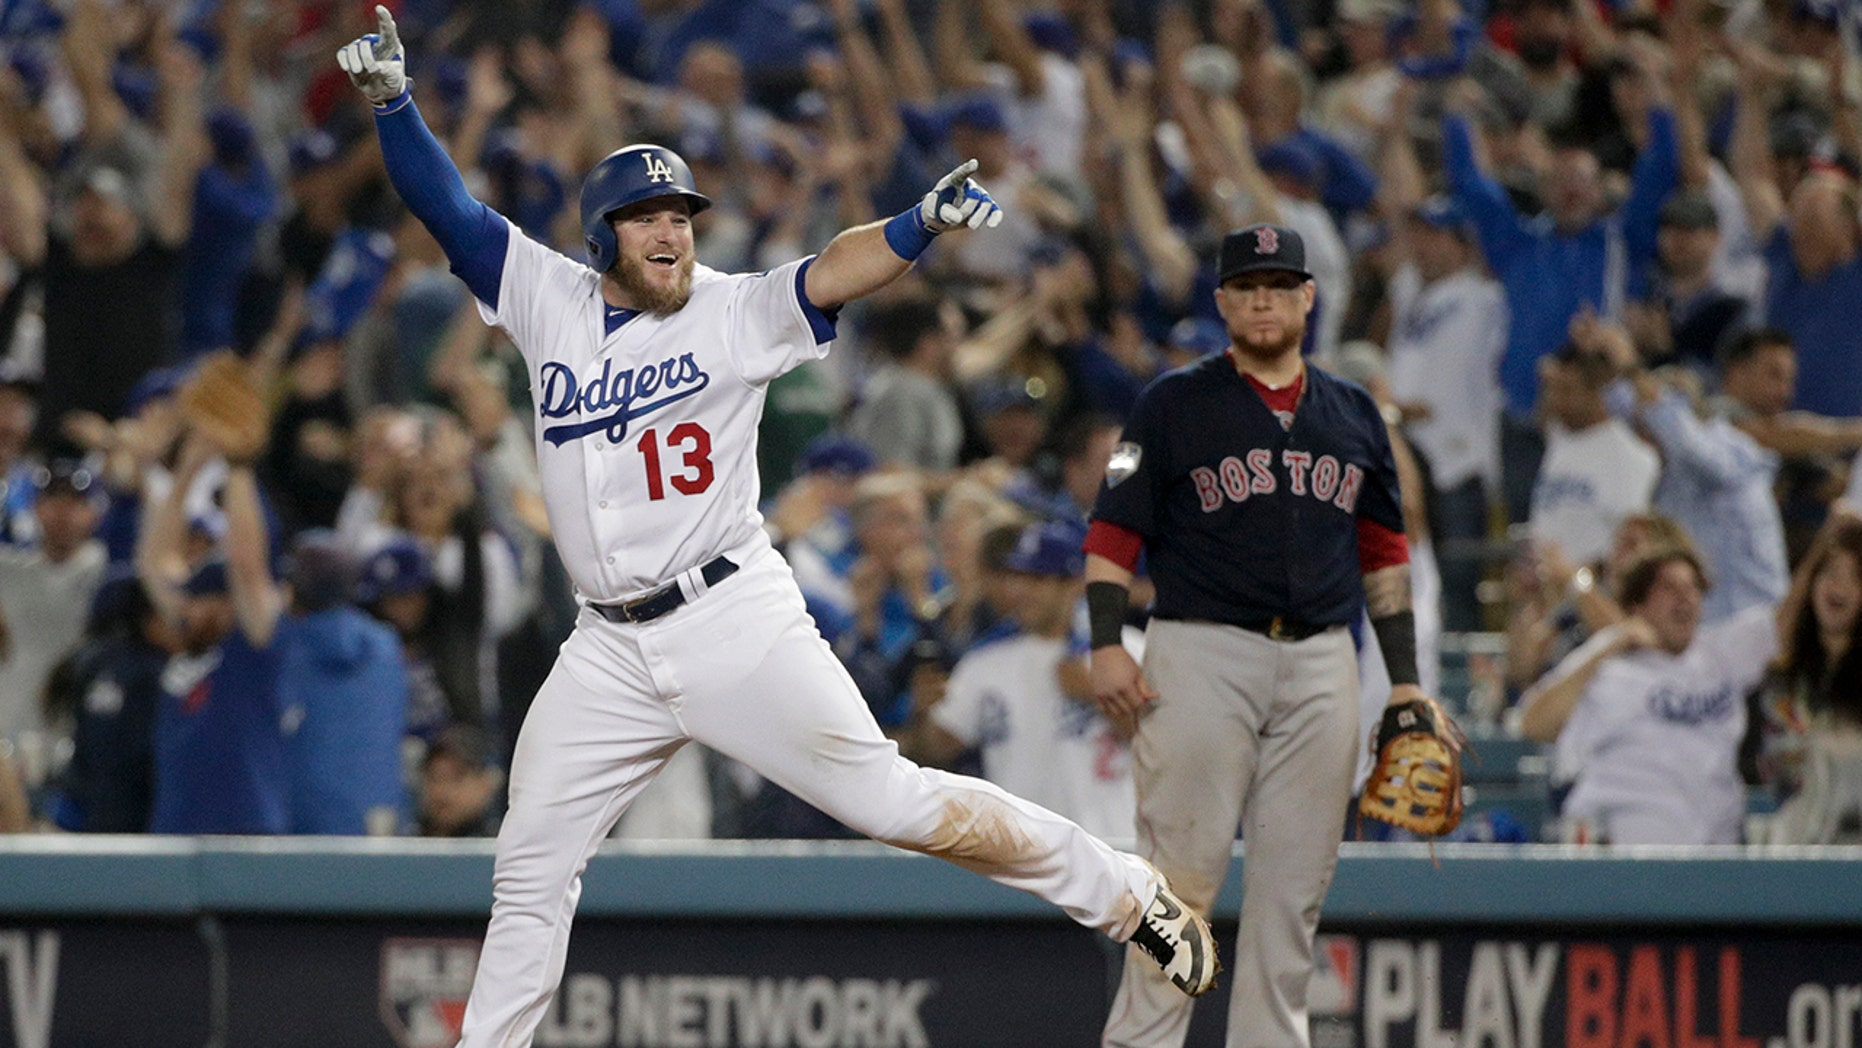 Los Angeles Dodgers' Max Muncy celebrates after his walk-off home run against the Boston Red Sox in the 18th inning of Game 3 of the World Series, on Saturday, Oct. 27, 2018, in Los Angeles. (Associated Press)